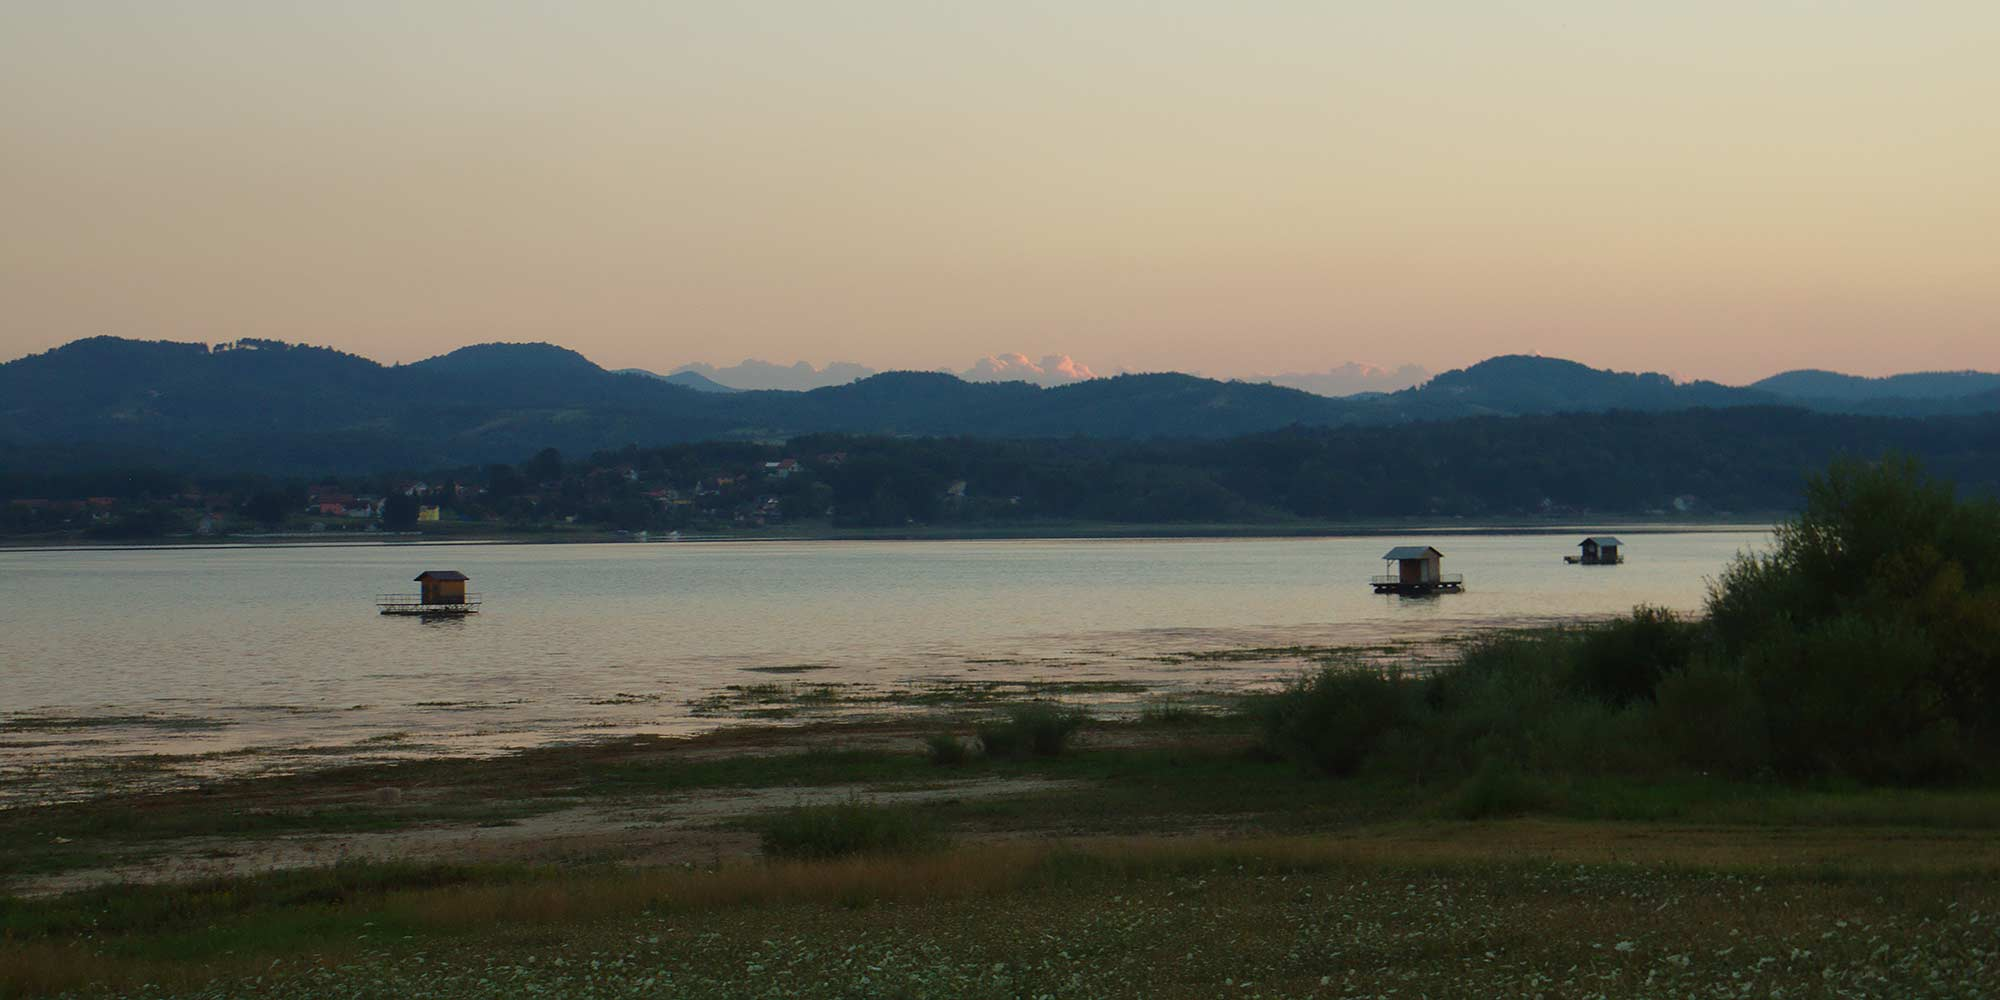 An evening view on Lake Modrac in Bosnia and Herzegovina